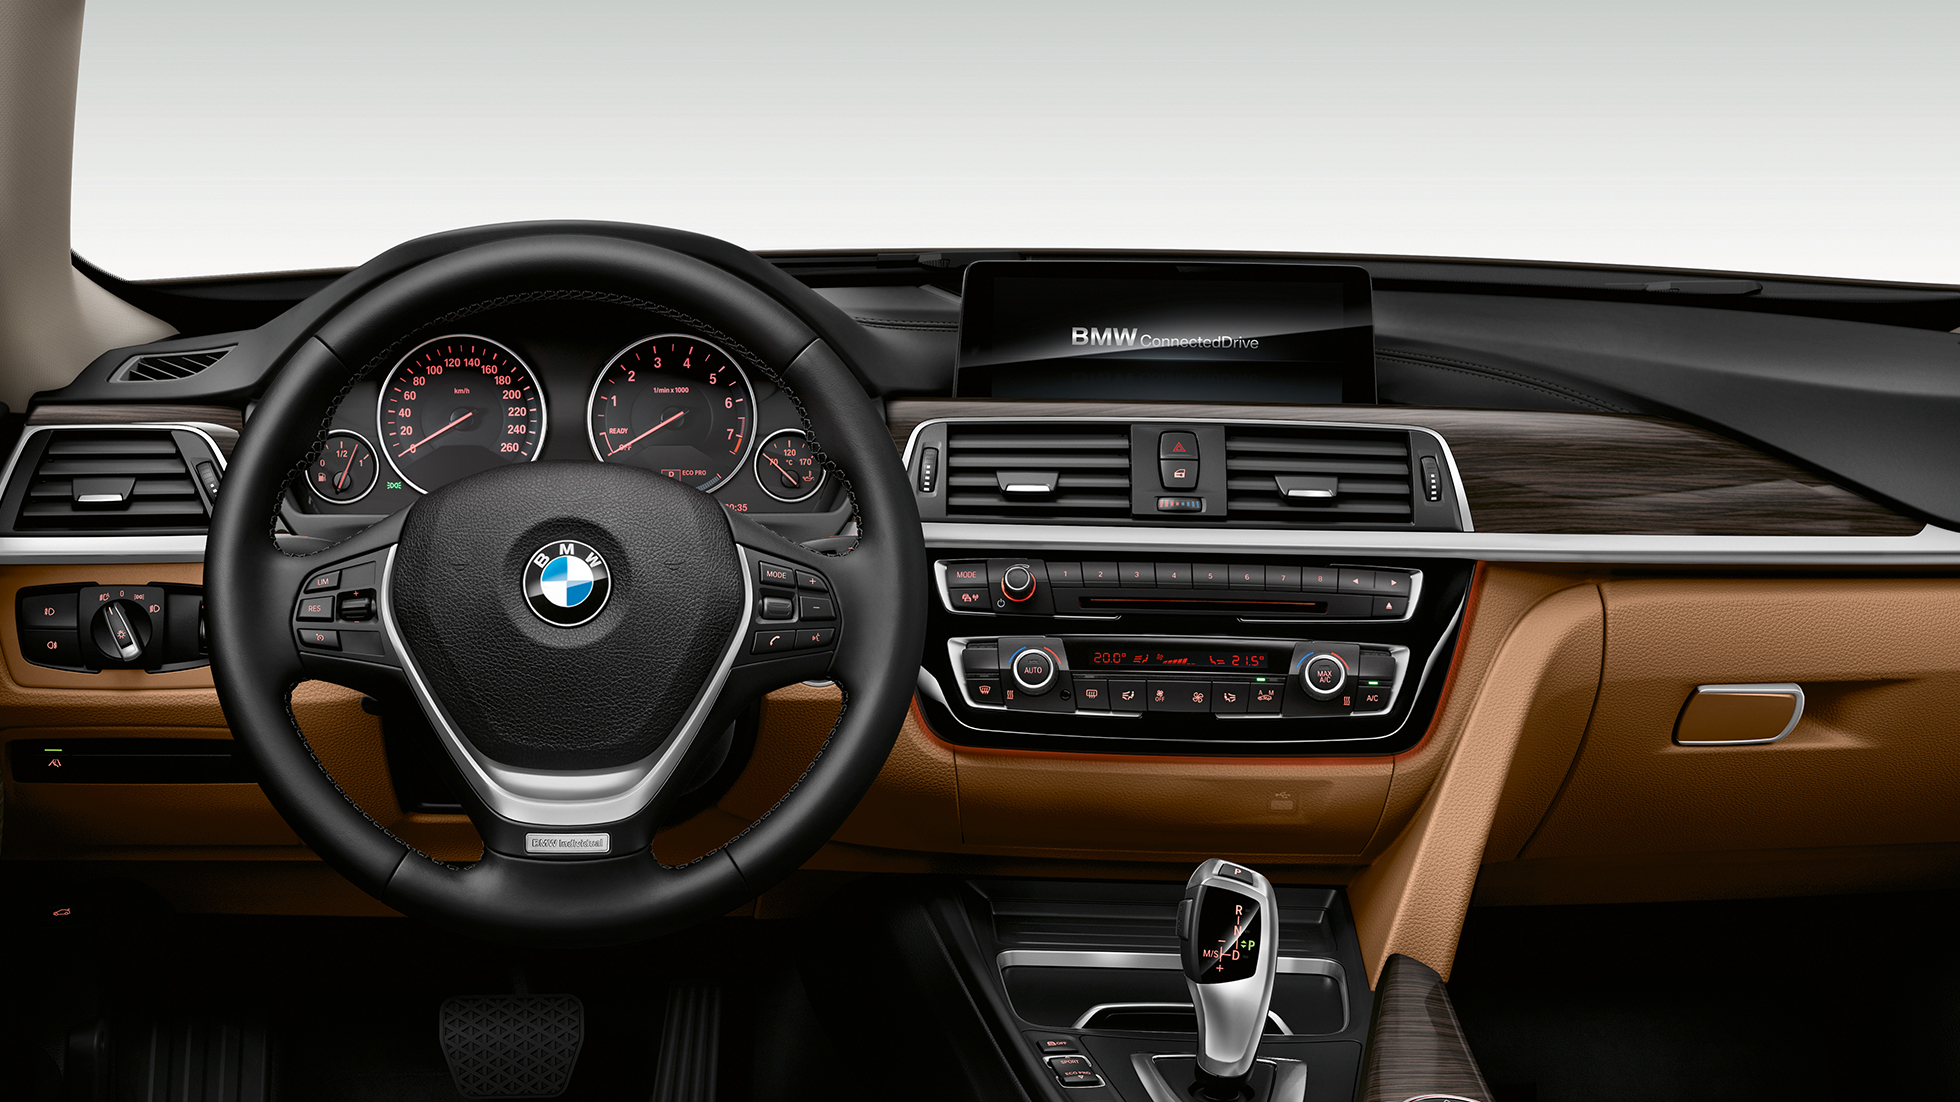 BMW 3-as Gran Turismo, a Luxury Line modell műszerfala